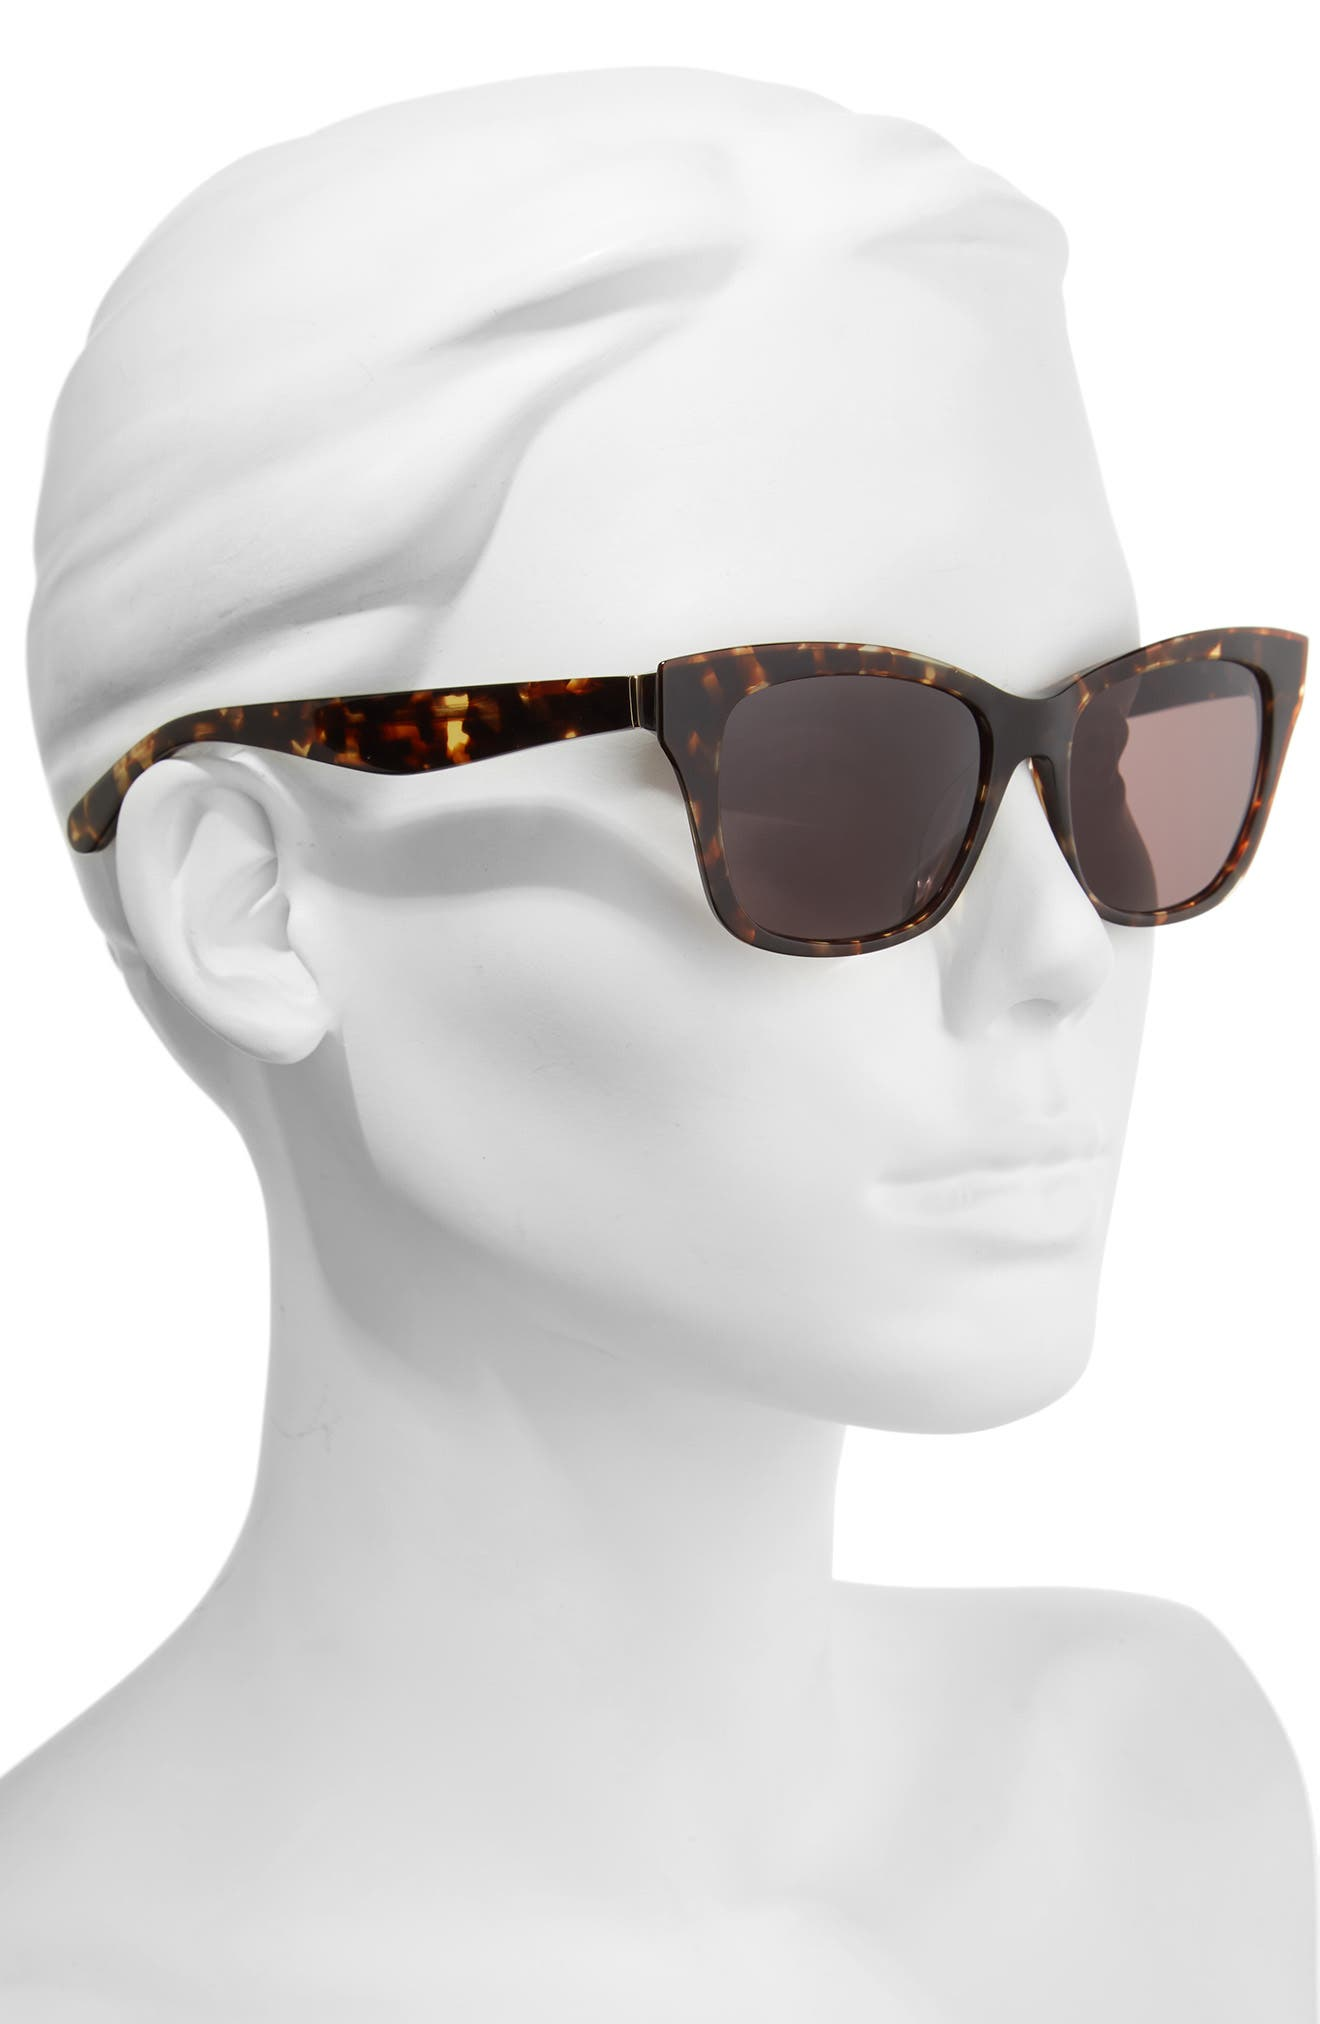 jenae 53mm sunglasses,                             Alternate thumbnail 2, color,                             Brown Havana